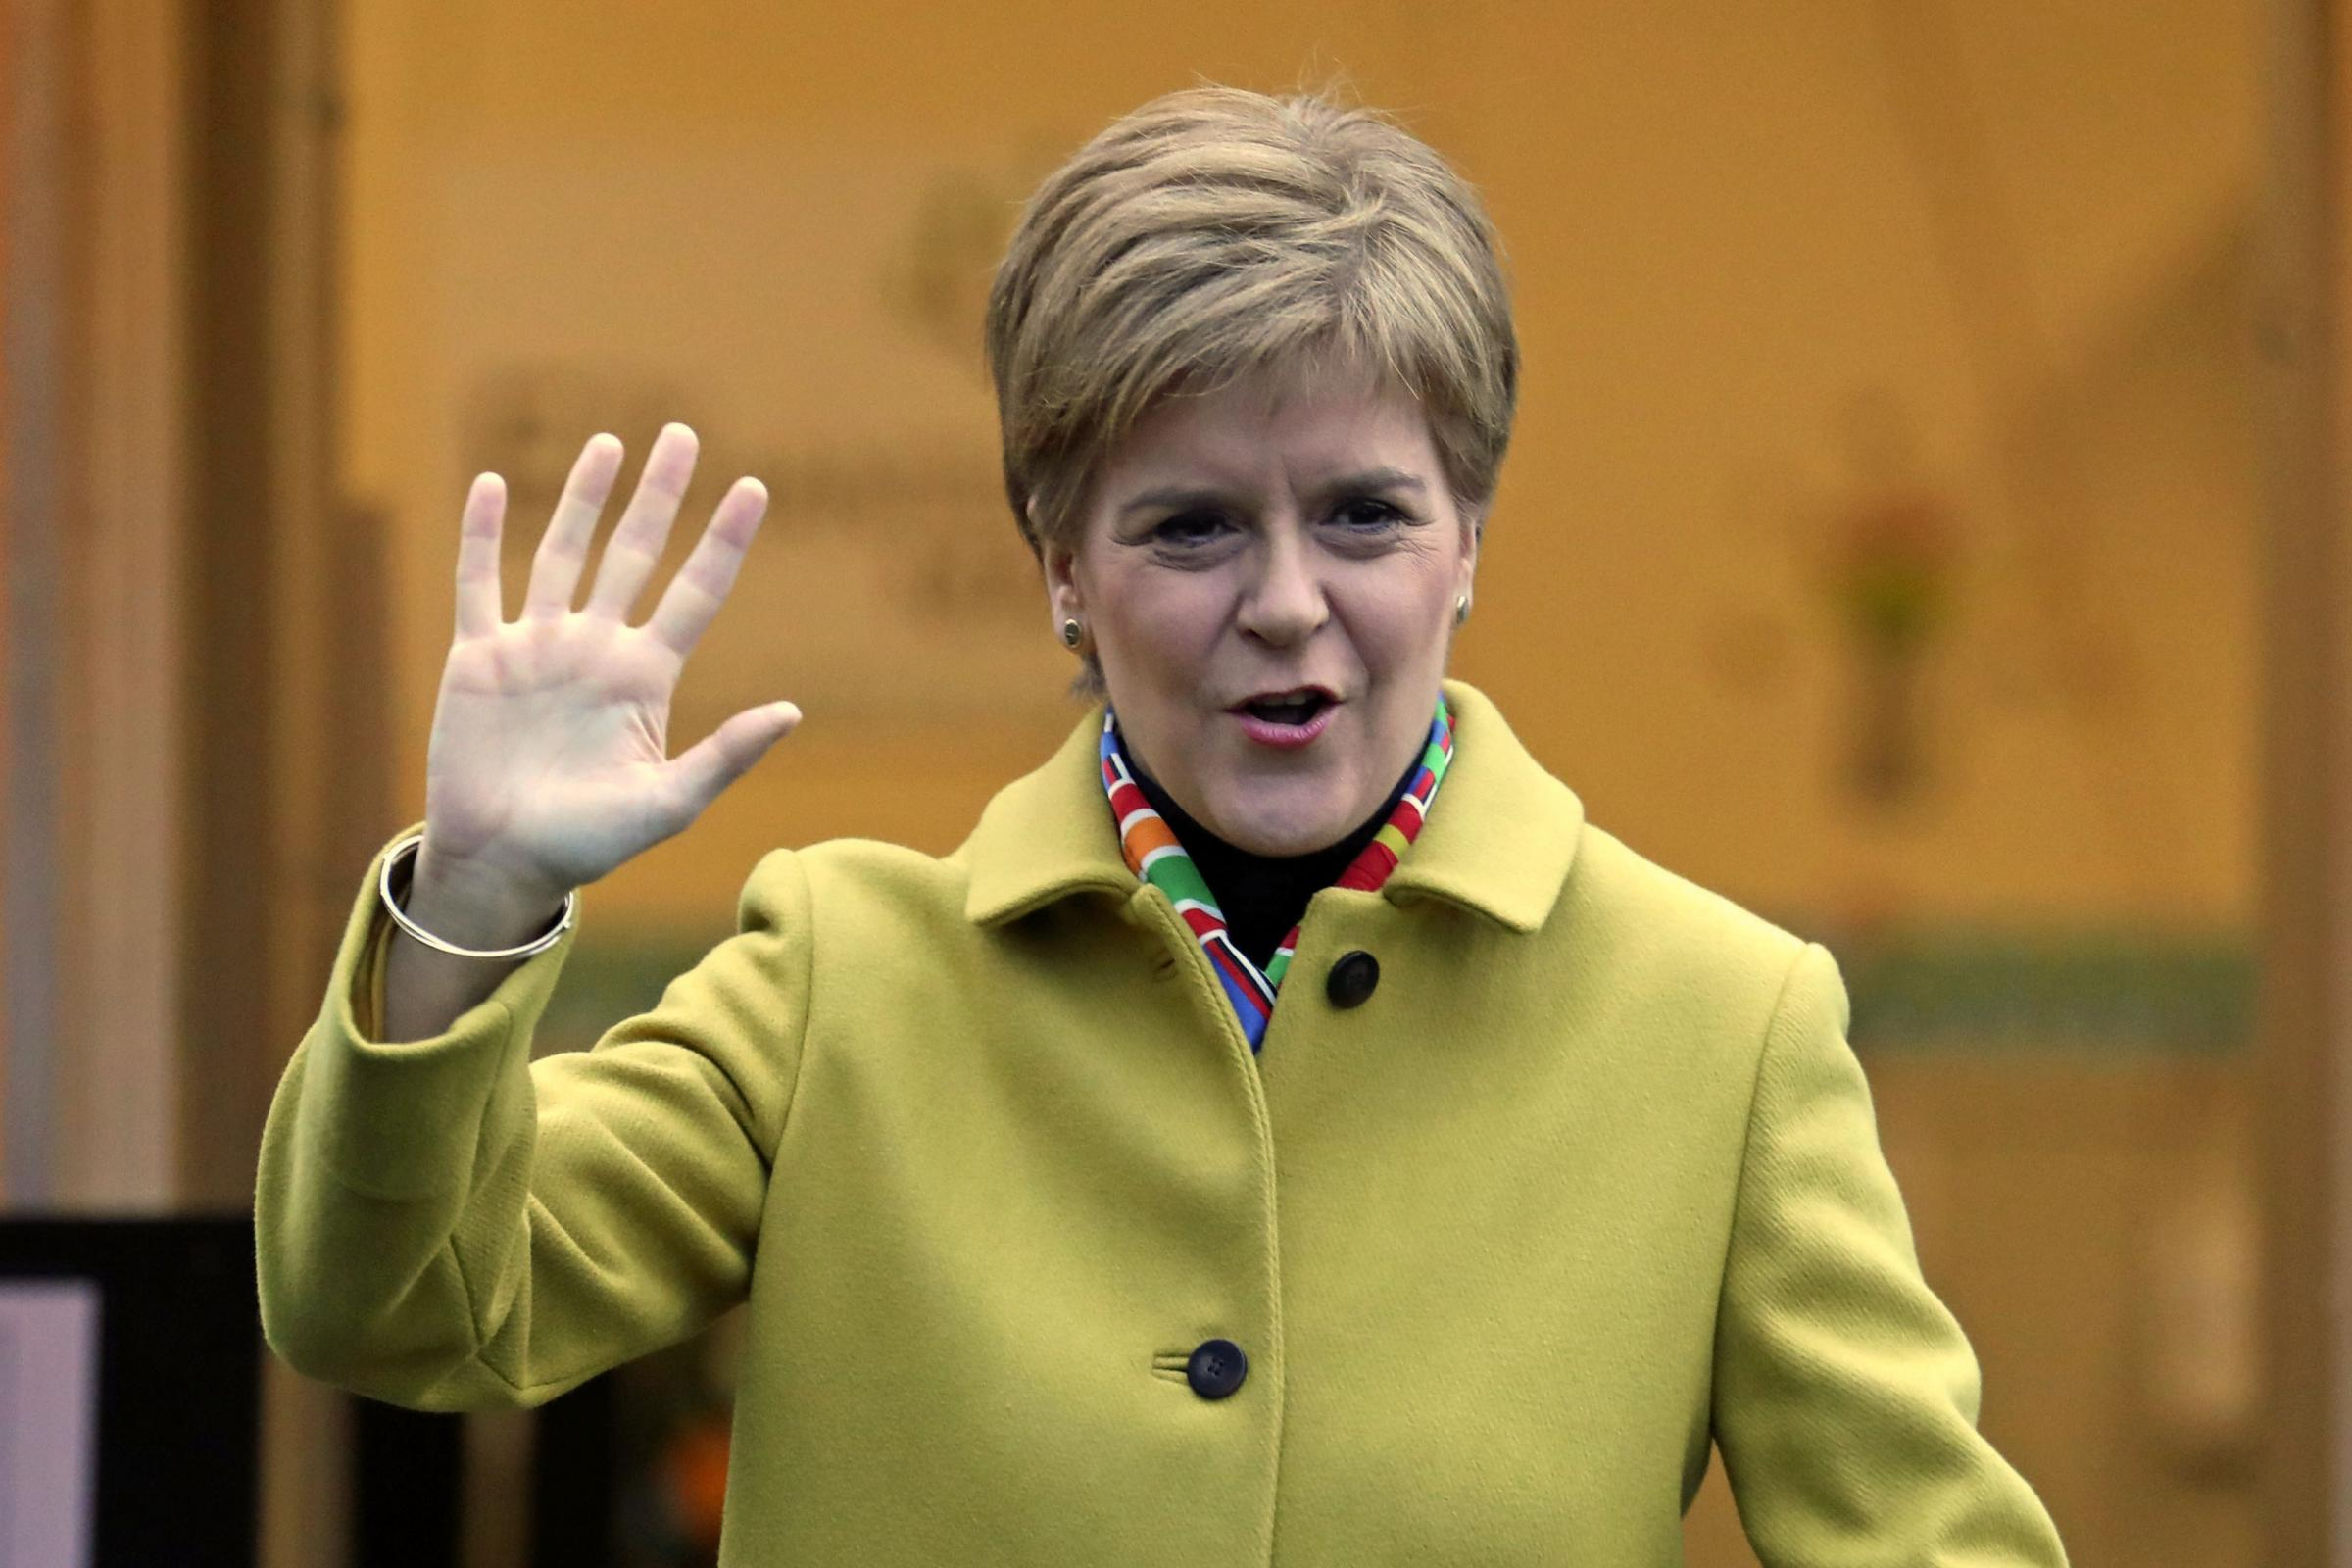 Coronavirus: Nicola Sturgeon has a suggestion for people out on daily walks